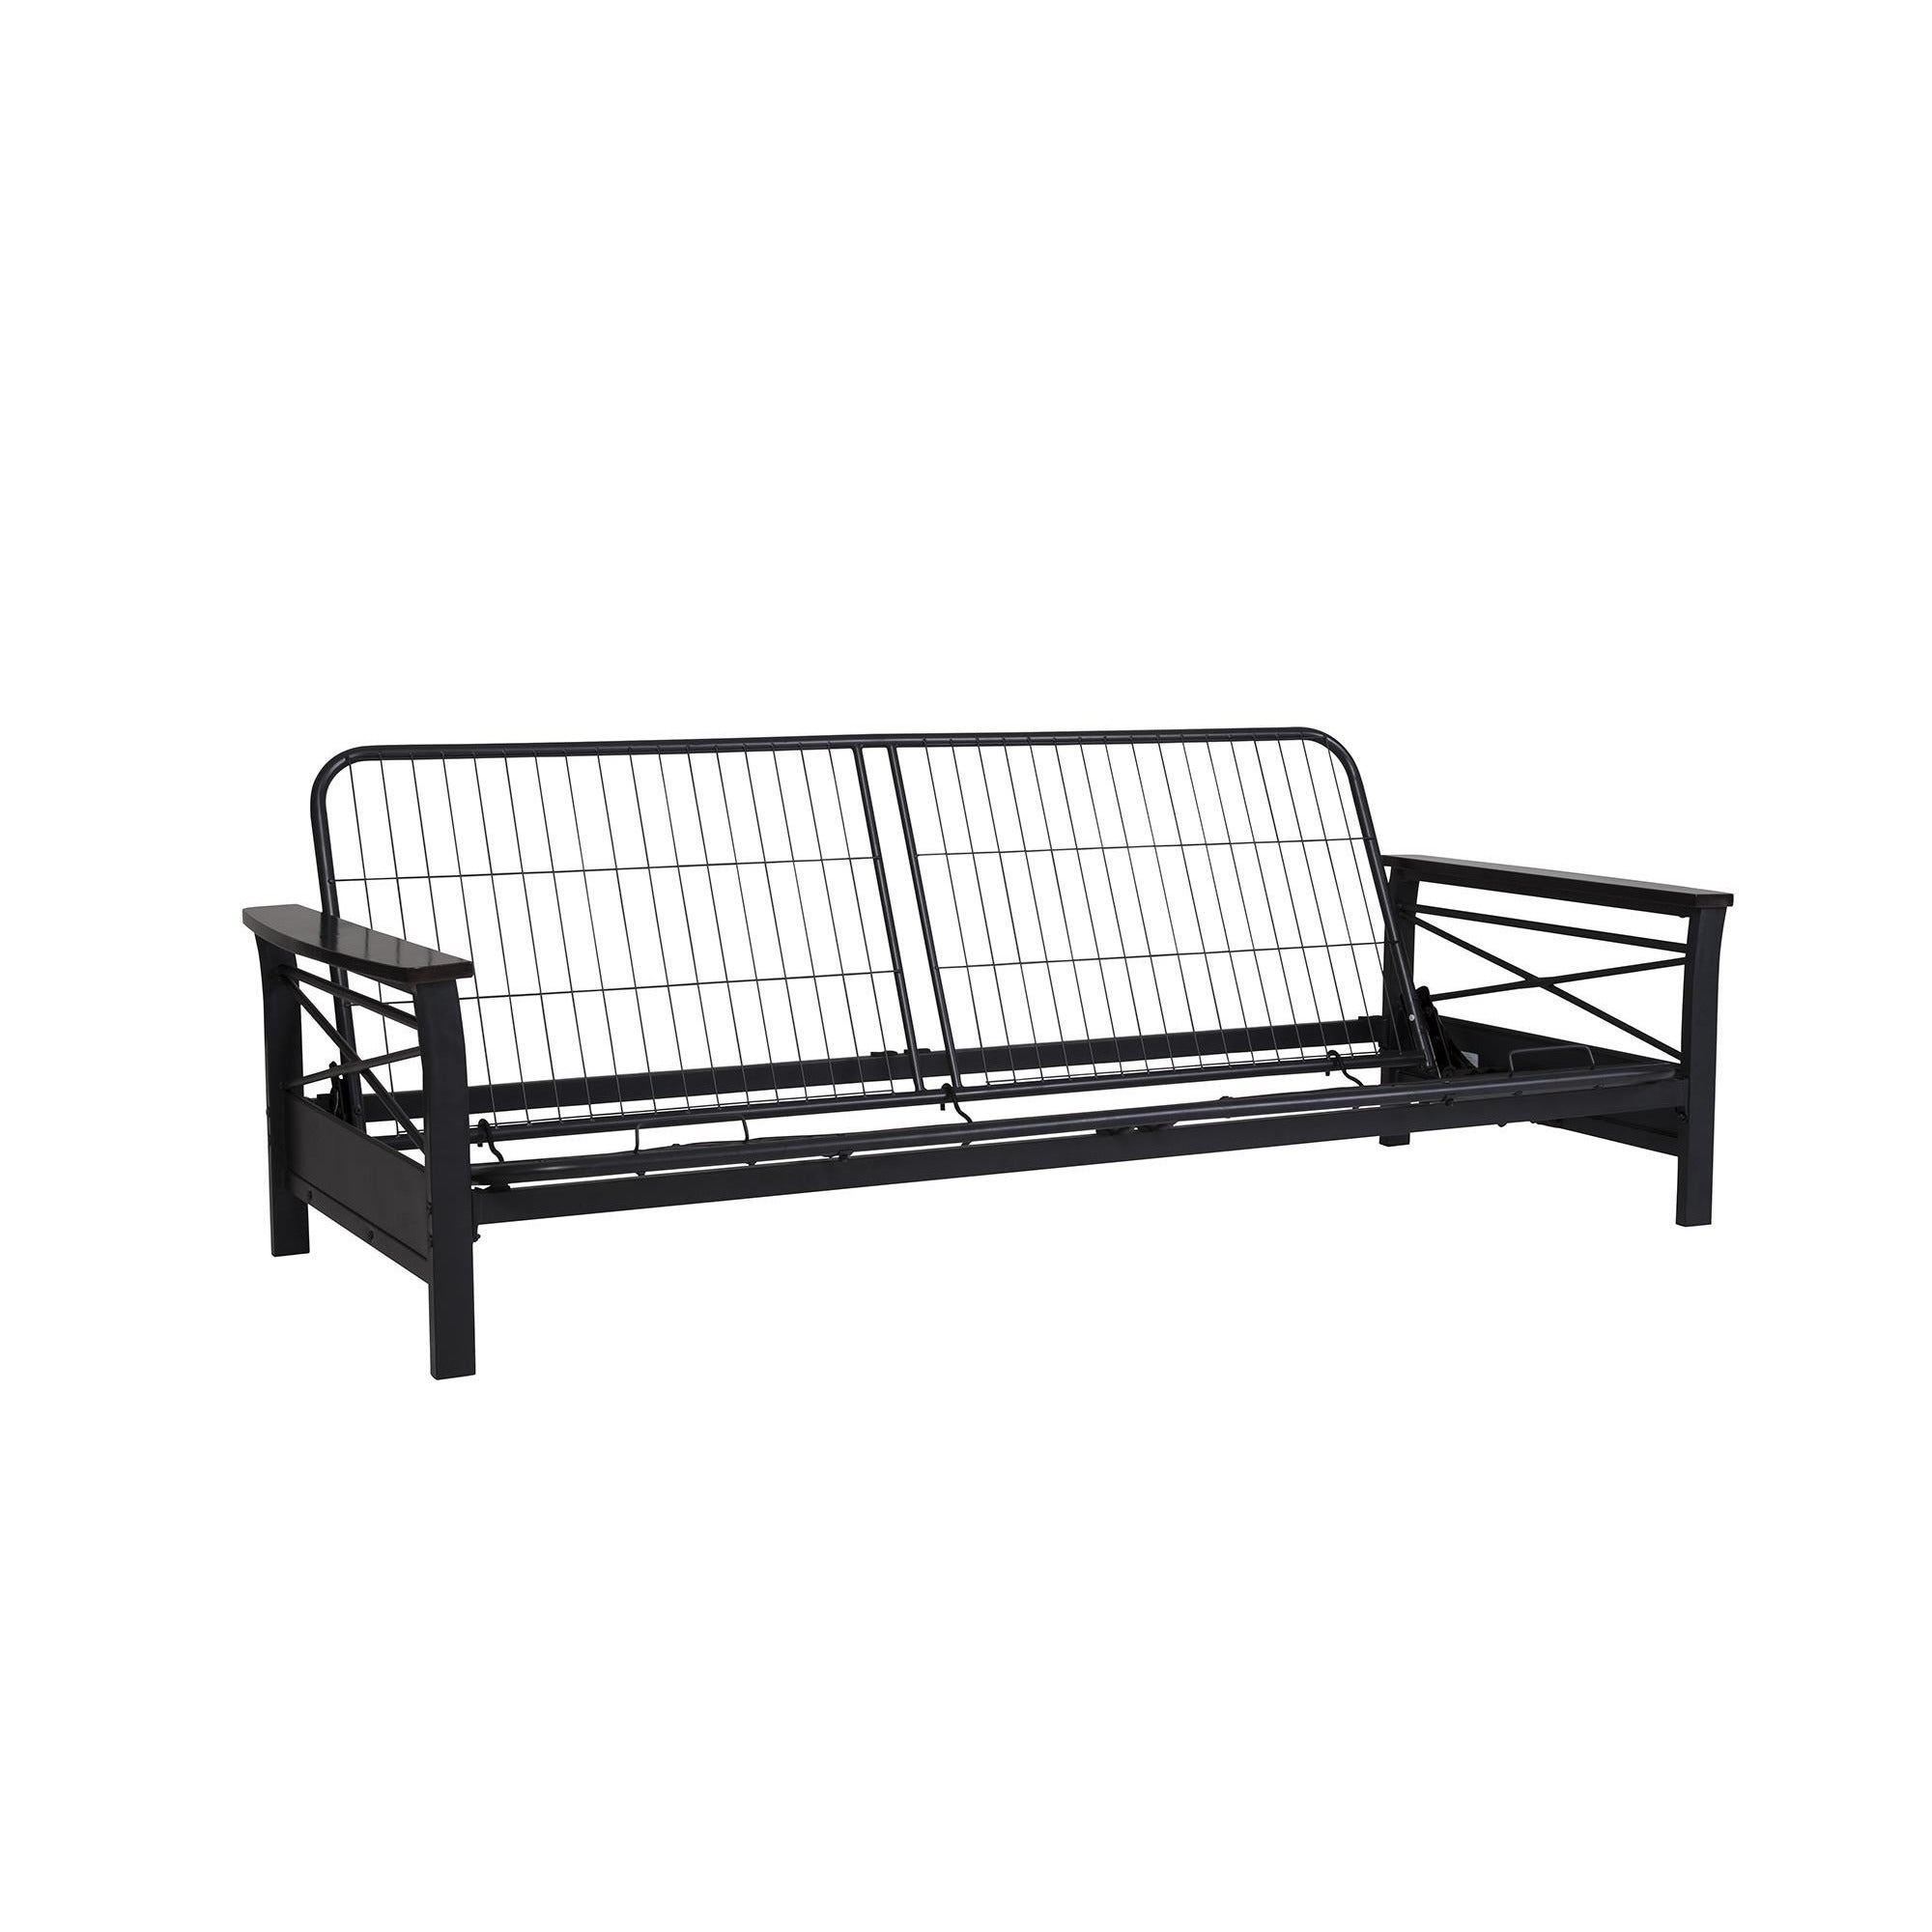 made black design metal futon bed twin awesome furniture adult frame shop well futons and for desk loft low with bedroom coaster adults beds high